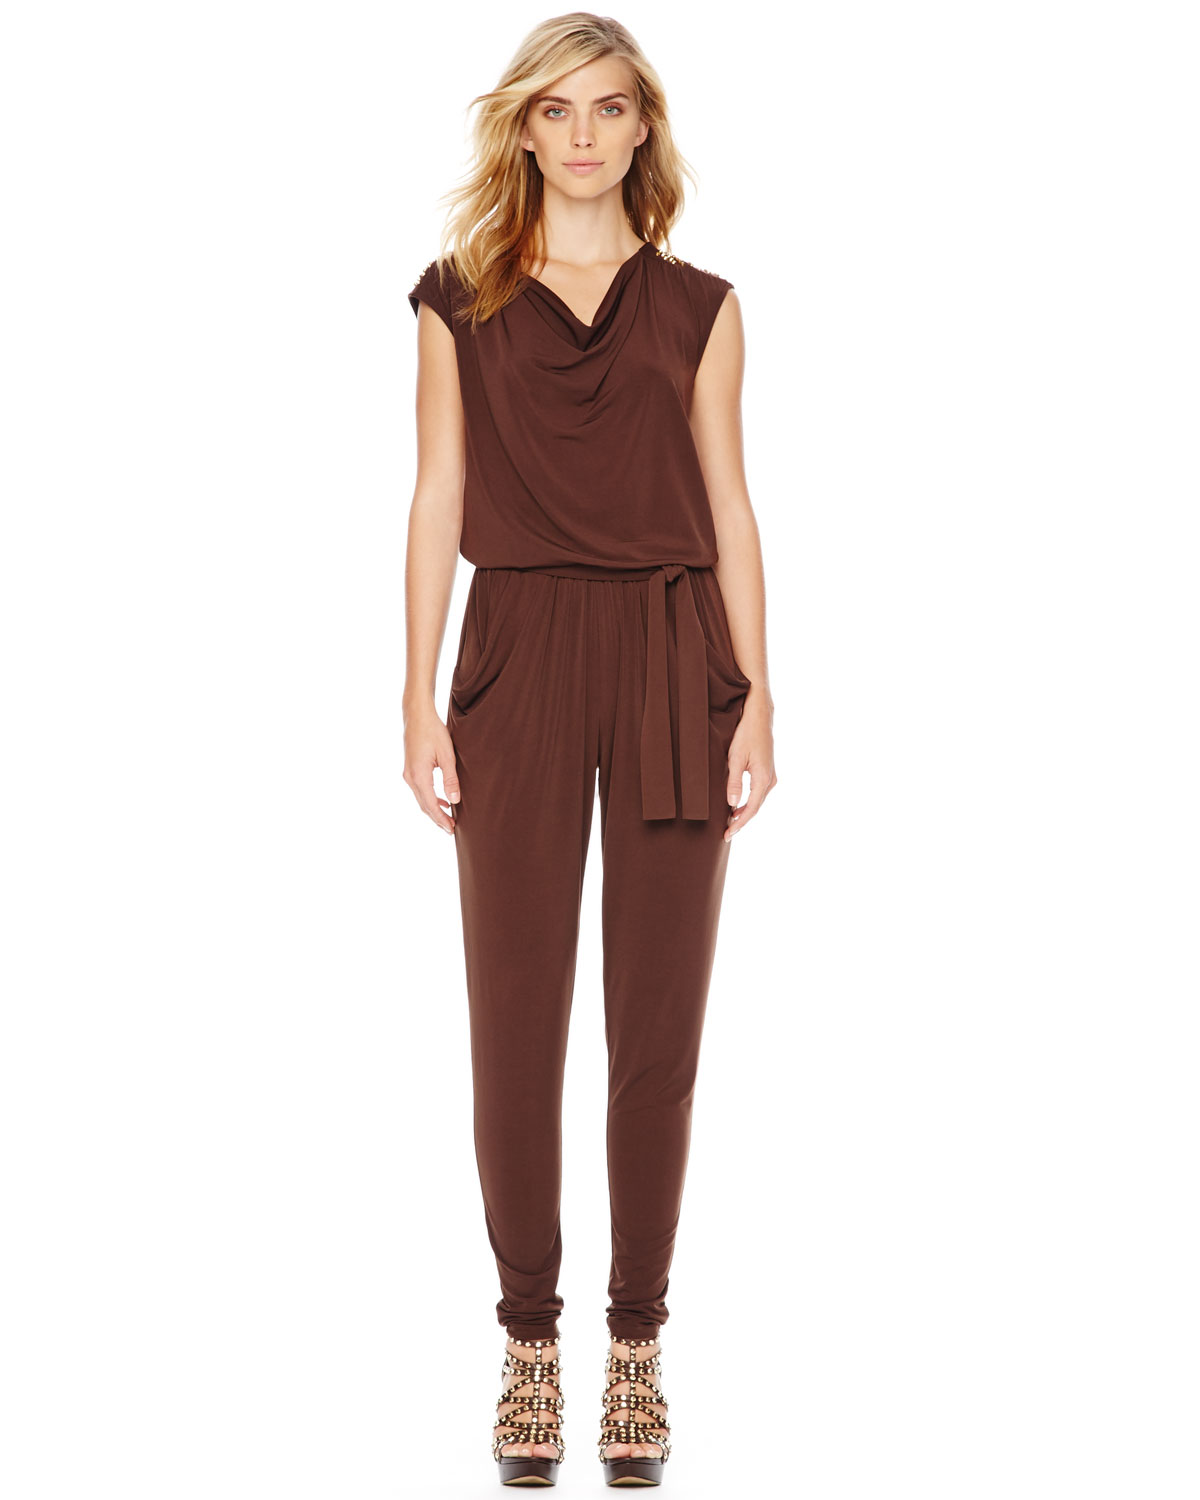 michael kors michael cowl neck jumpsuit in brown chocolate lyst. Black Bedroom Furniture Sets. Home Design Ideas